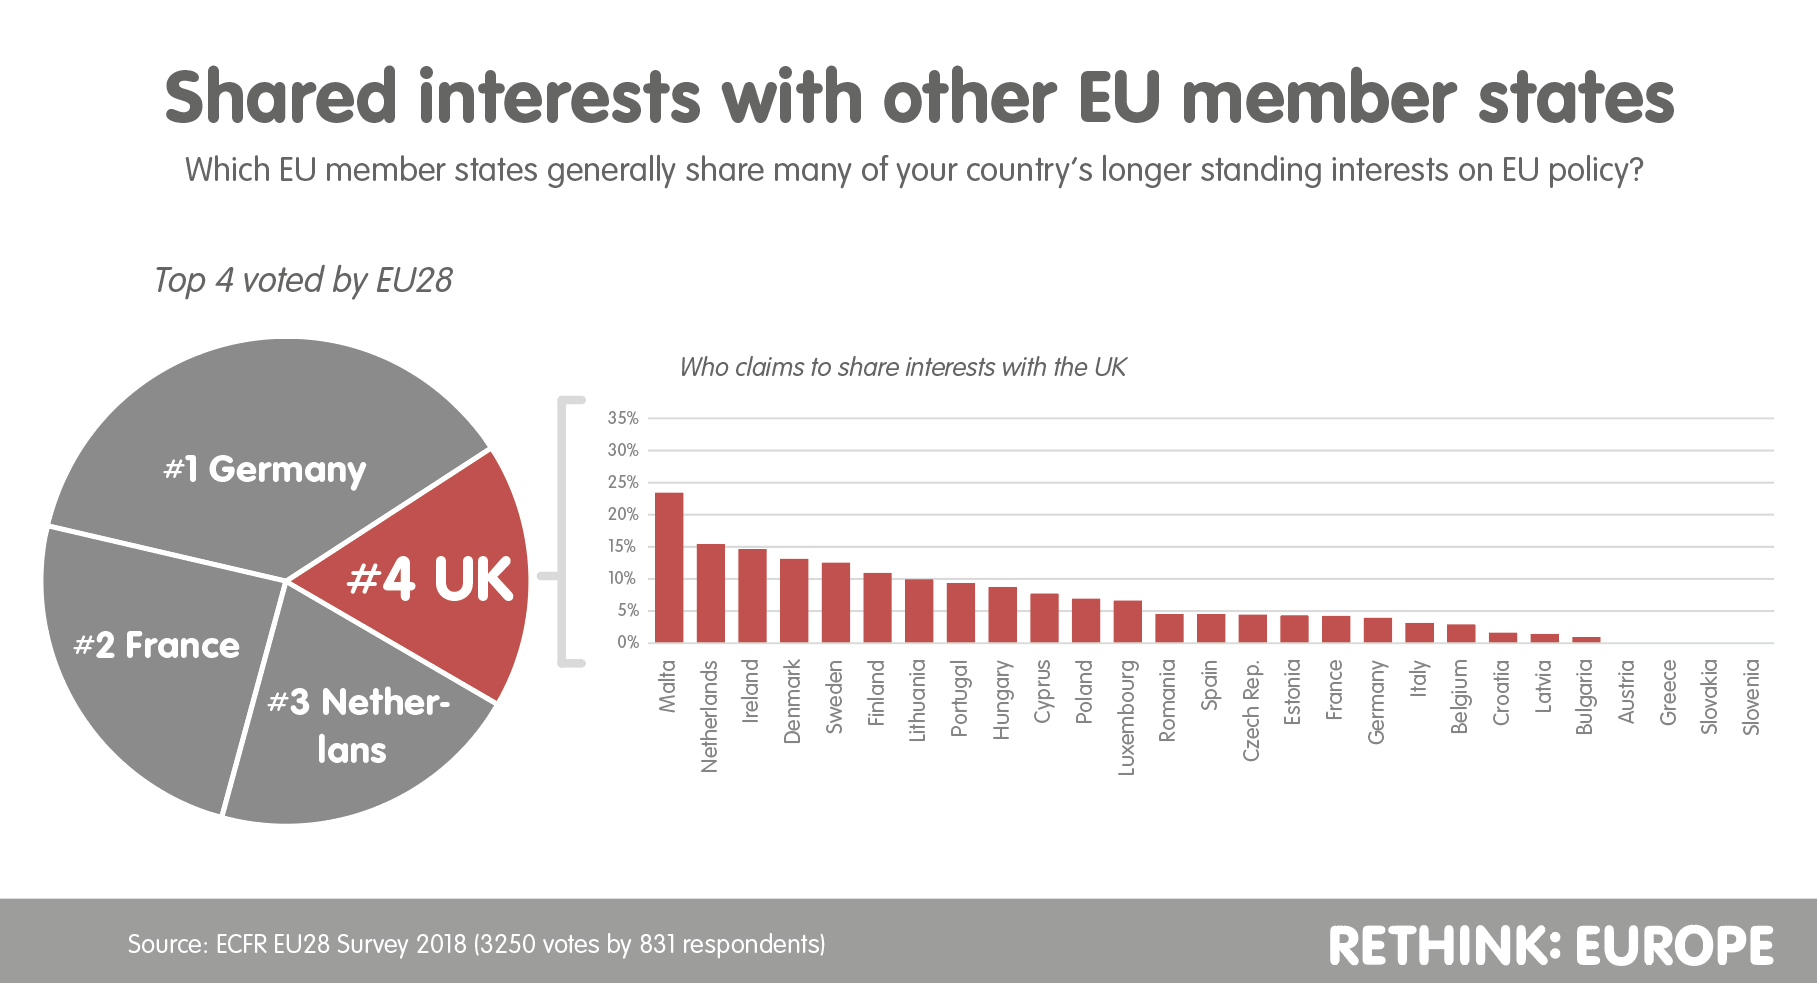 Shared interests with other EU member states